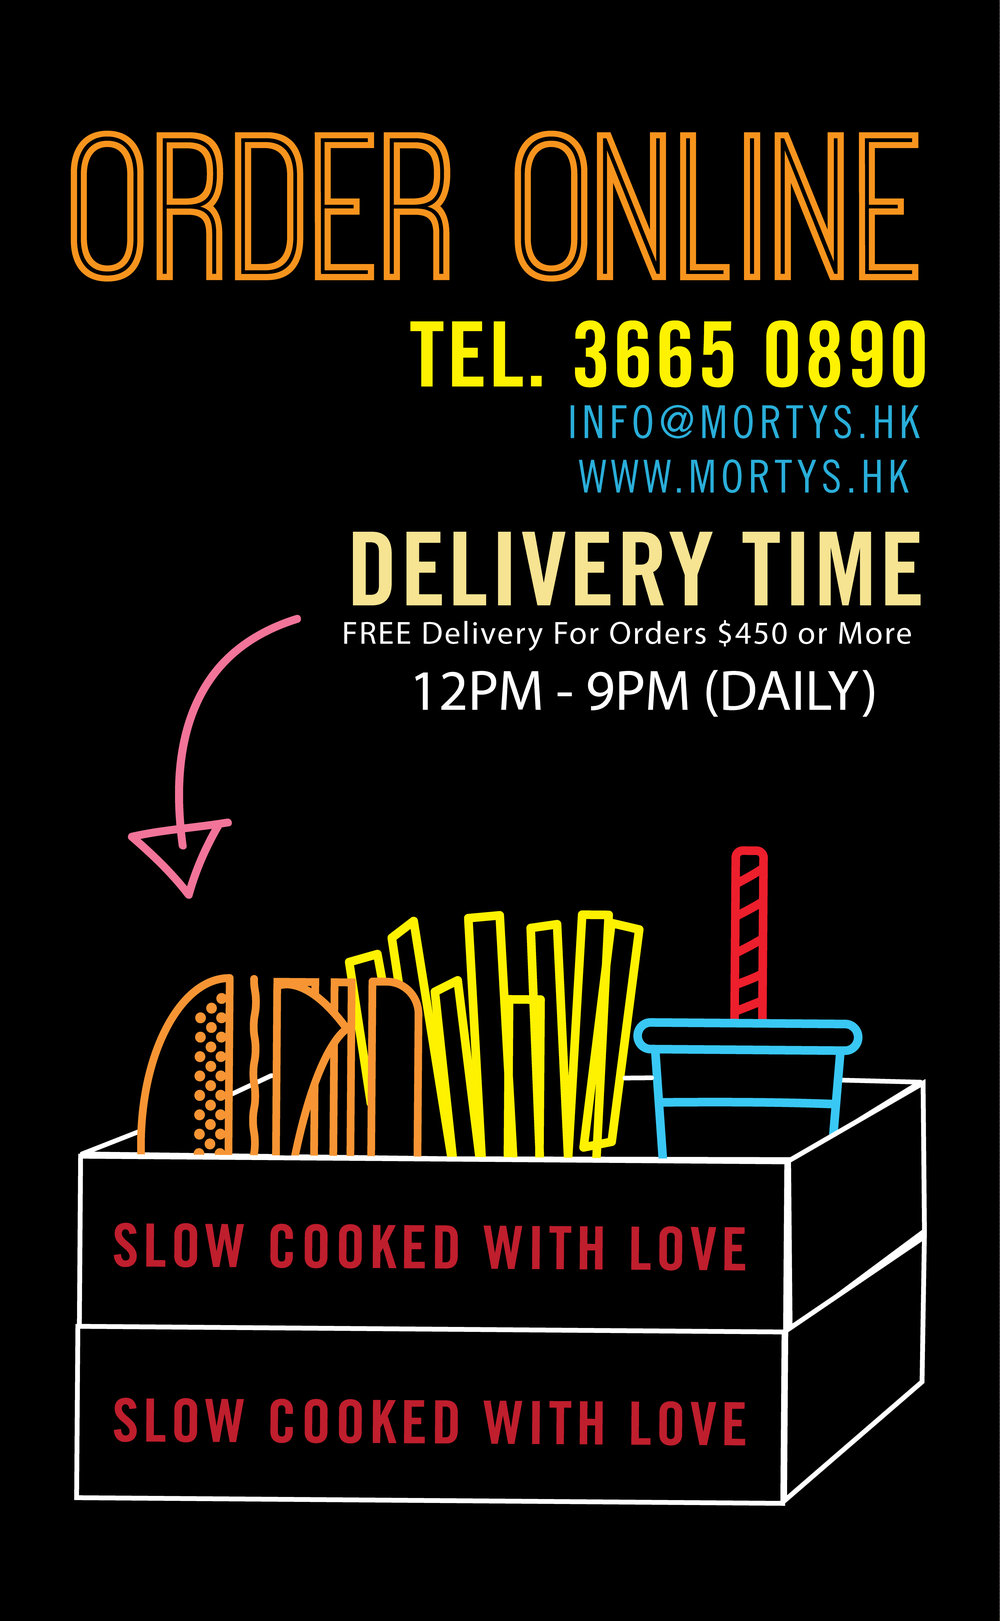 NOW OFFERING DELIVERY IN WANCHAI!! - ORDER ON-LINE FOR PICK-UP OR DELIVERY! NOW AVAILABLE: MORTY'S STARSTREET